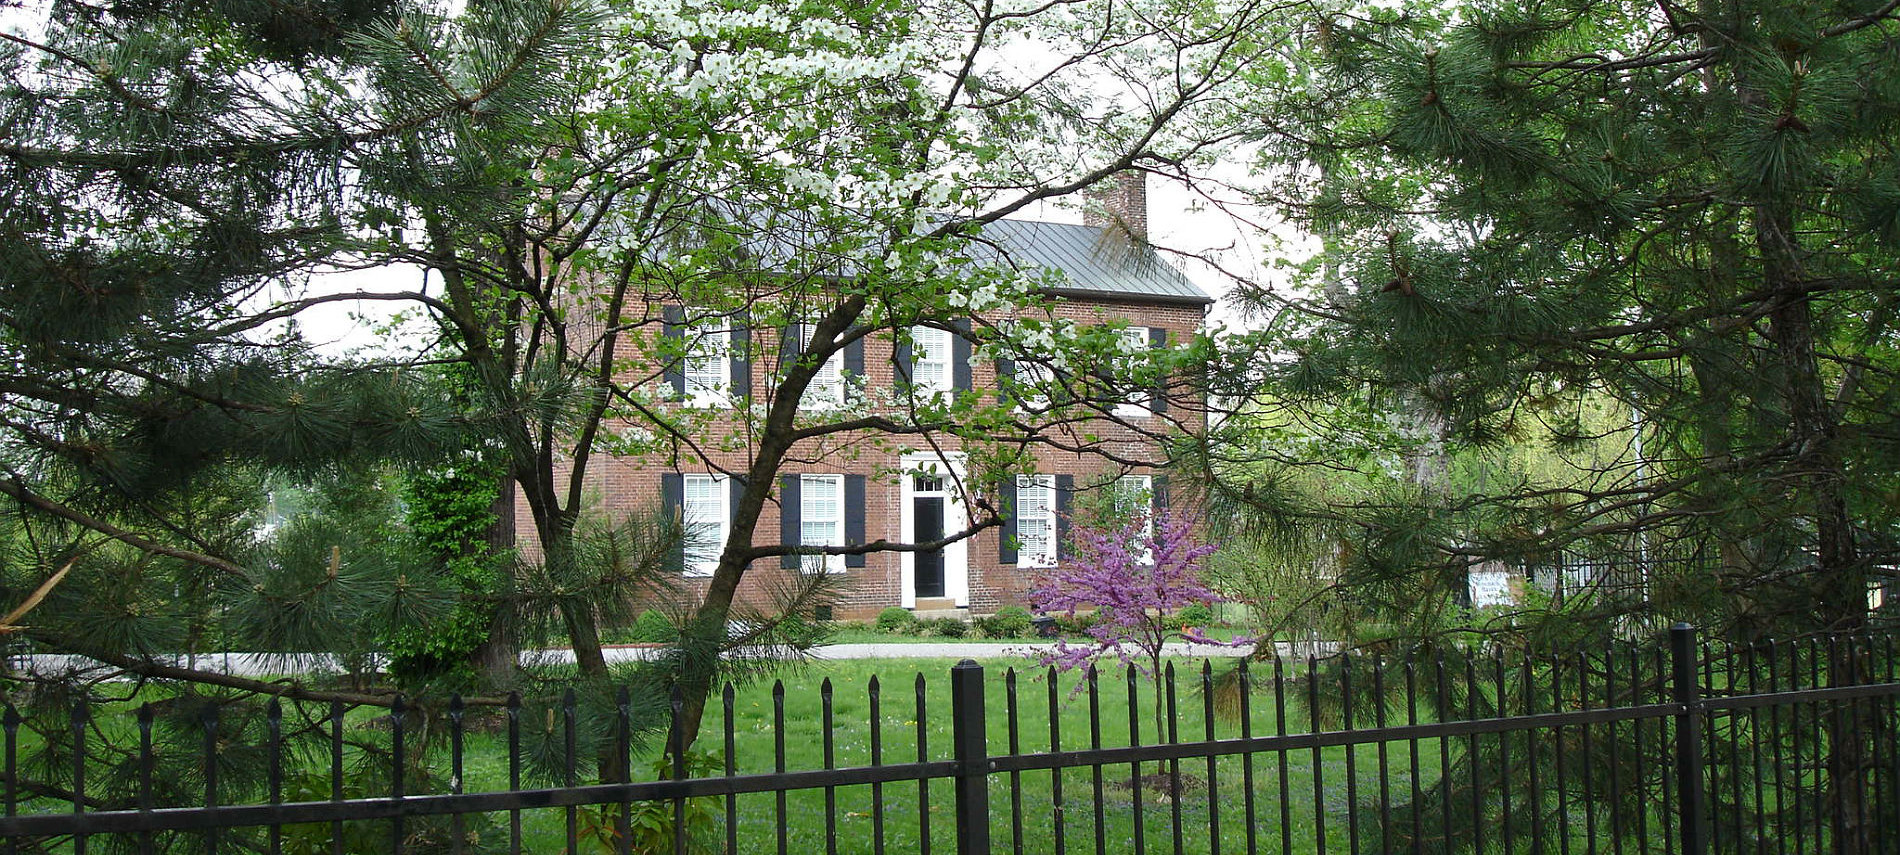 Springtime view of Bourbon Manor B&B's two-story brick Federal House with pine, dogwood and redbud trees in the foreground